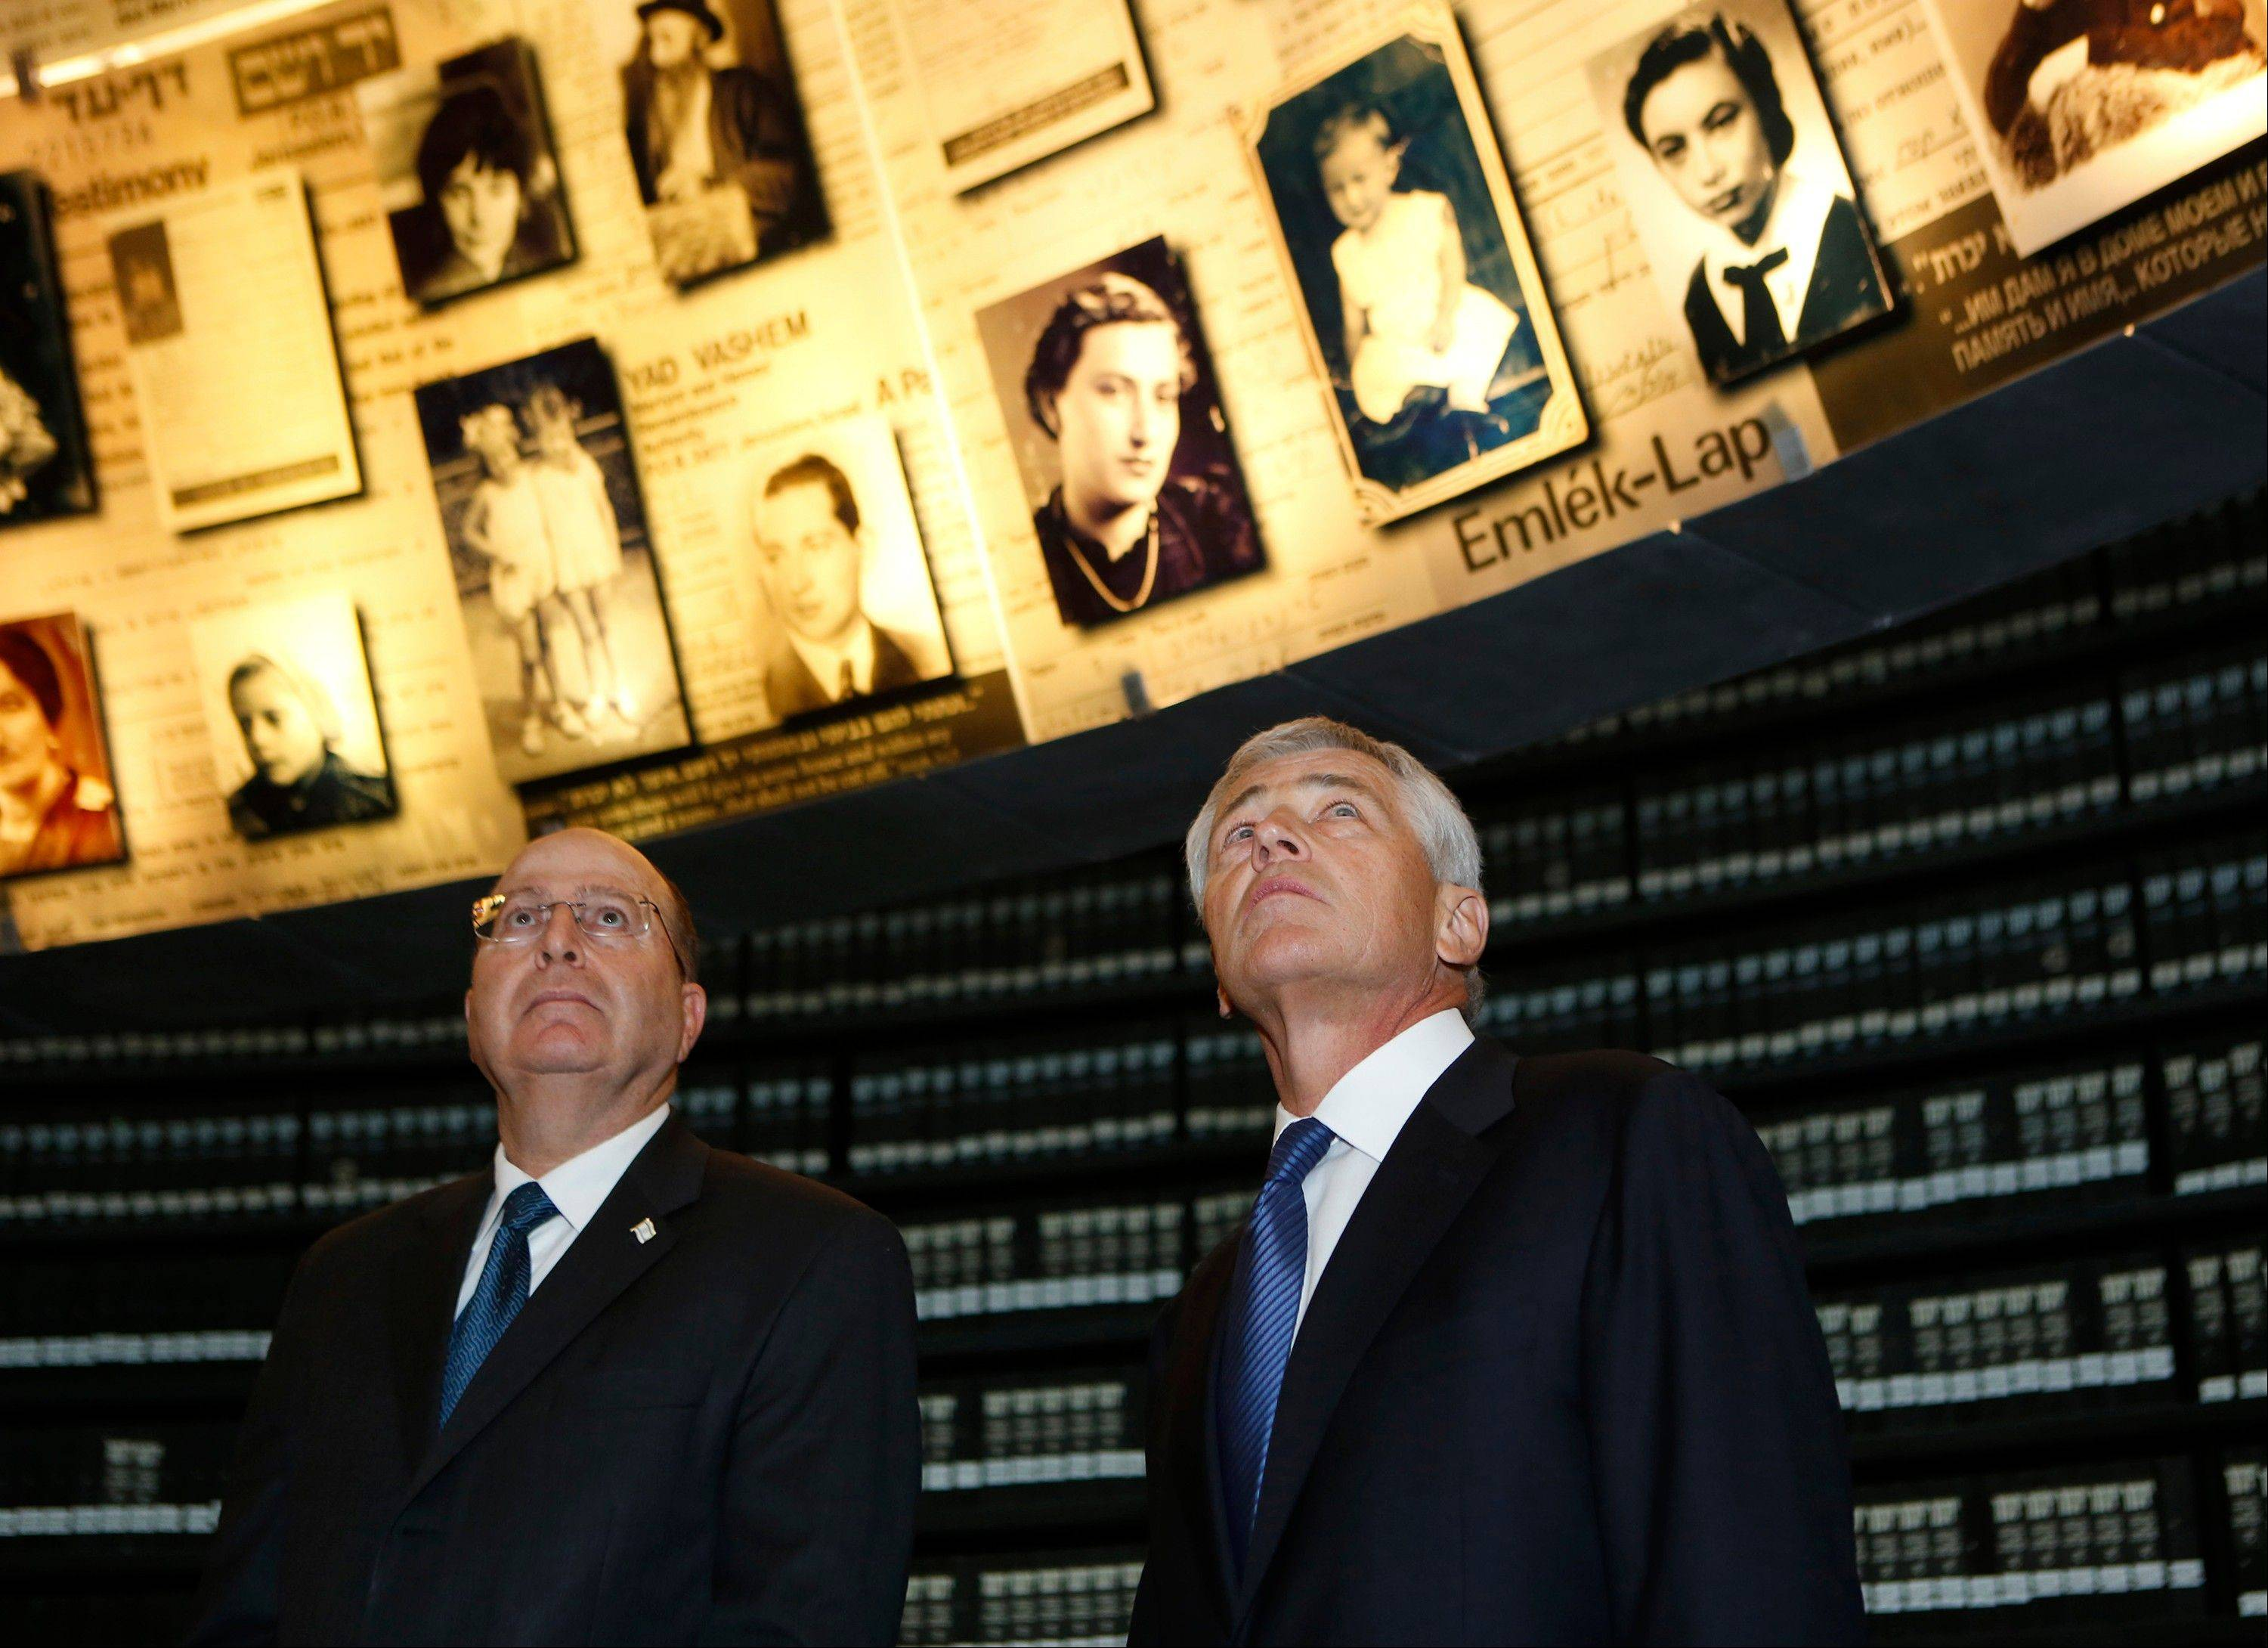 U.S. Defense Secretary Chuck Hagel, right, stands next to Israel�s Defense Minister Moshe Yaalon as he looks at pictures of Jews killed in the Holocaust during a Sunday visit to the Hall of Names at Yad Vashem�s Holocaust History Museum in Jerusalem.